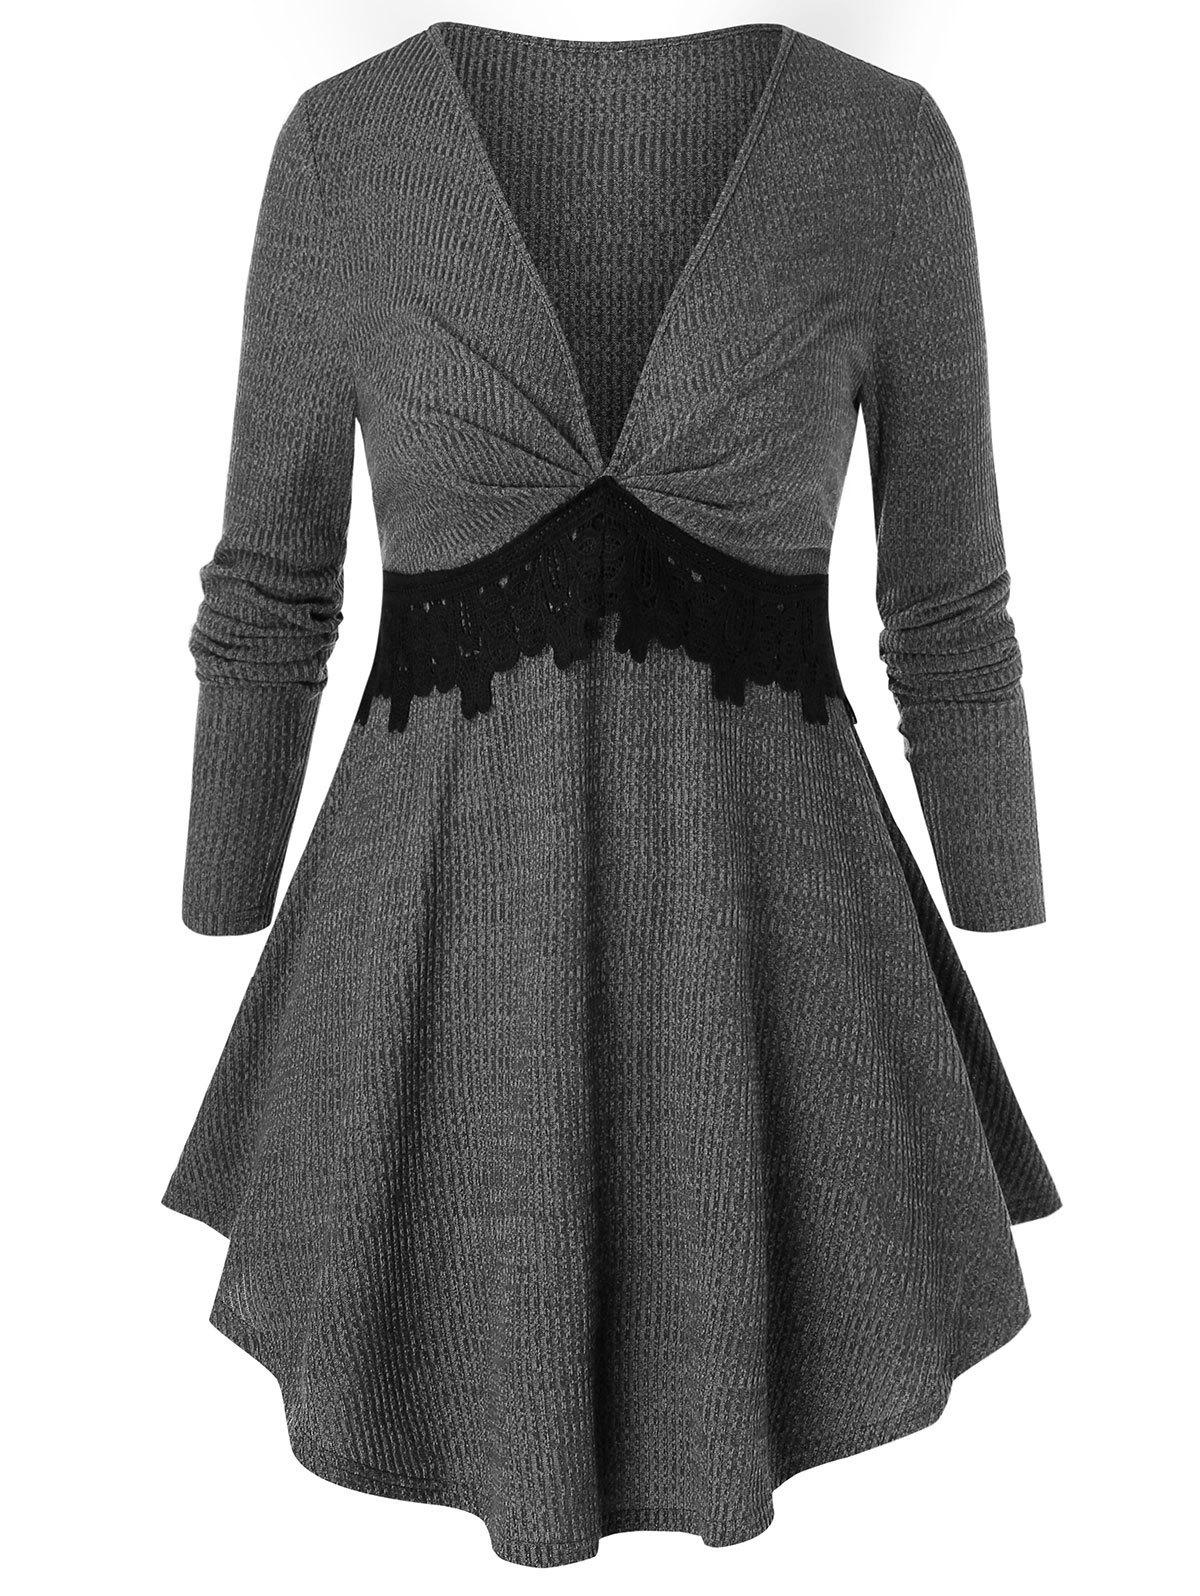 Plus Size Plunging Neck Lace Insert Marled Knitwear - GRAY 4X